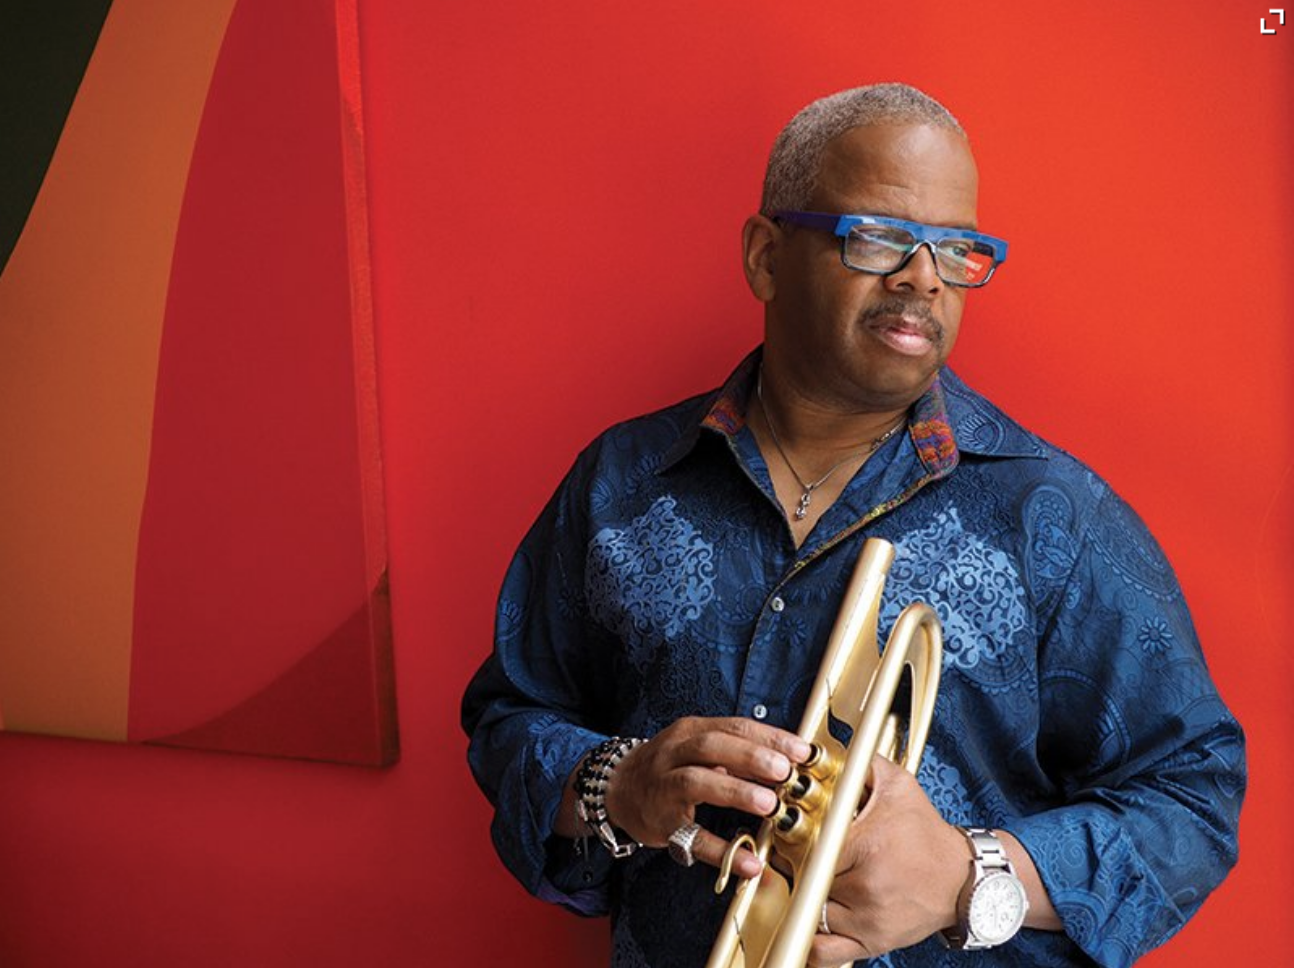 Terence Blanchard, PHOTO BY HENRY ADEBONOJO, Courtesy of The St Louis Magazine